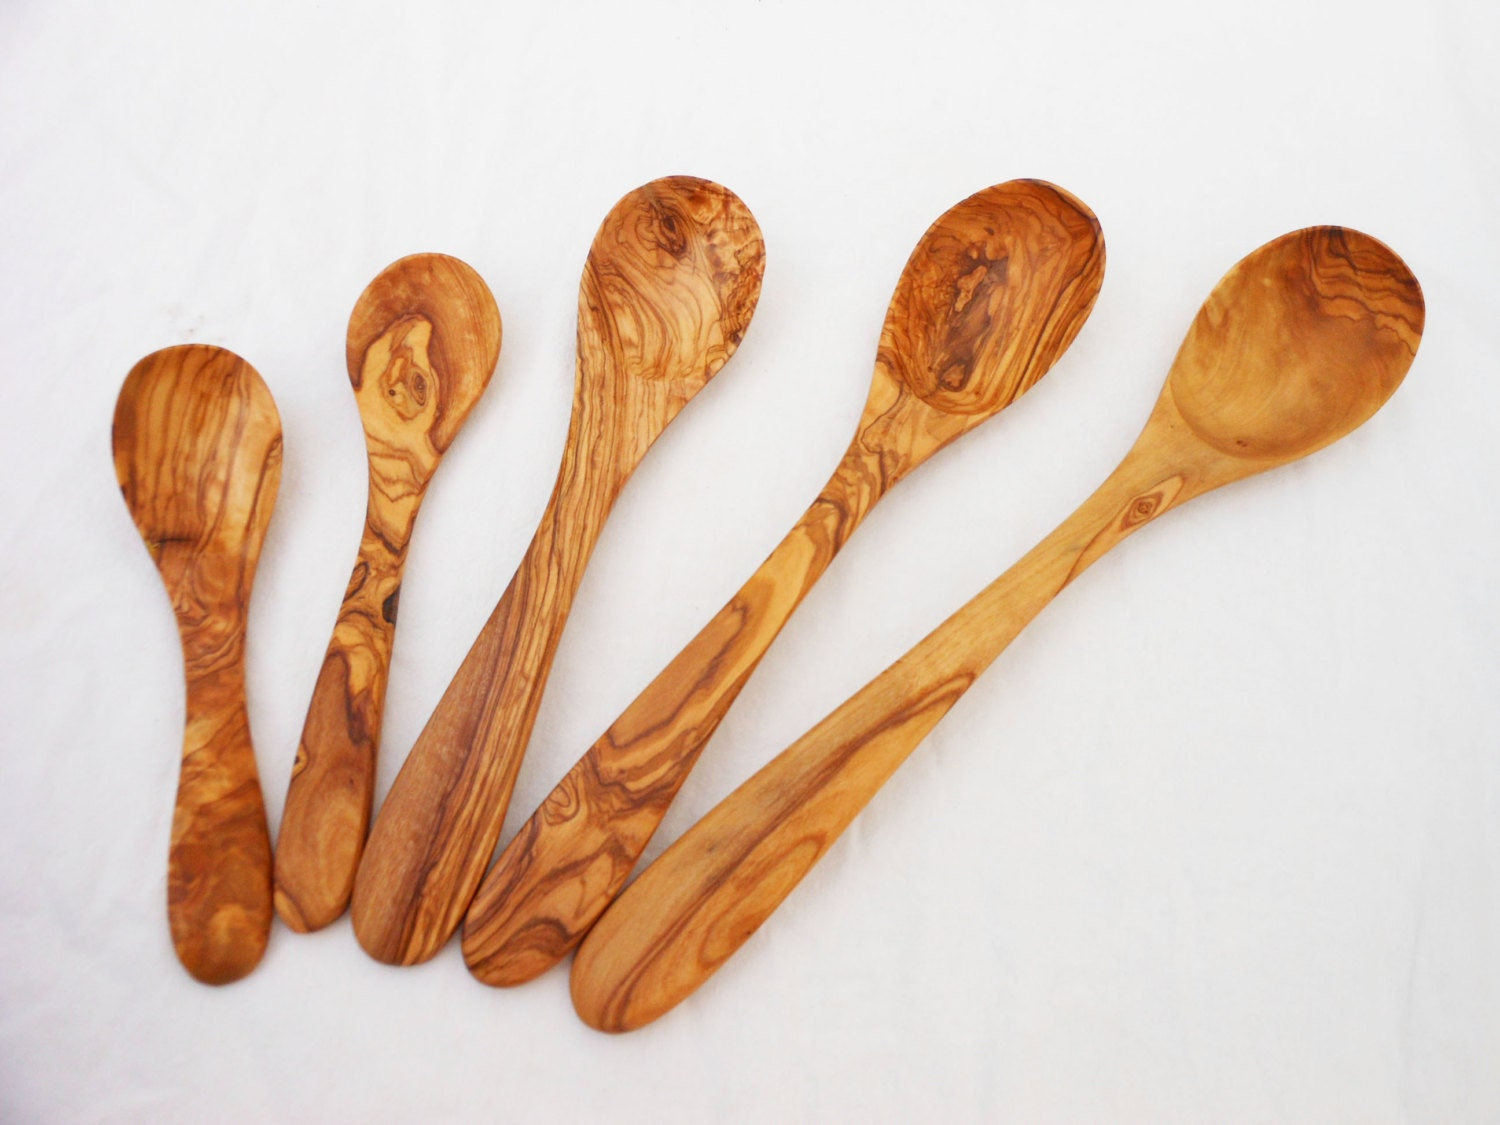 Olive Wood spoon set / Wooden spoons / Kitchen Cooking